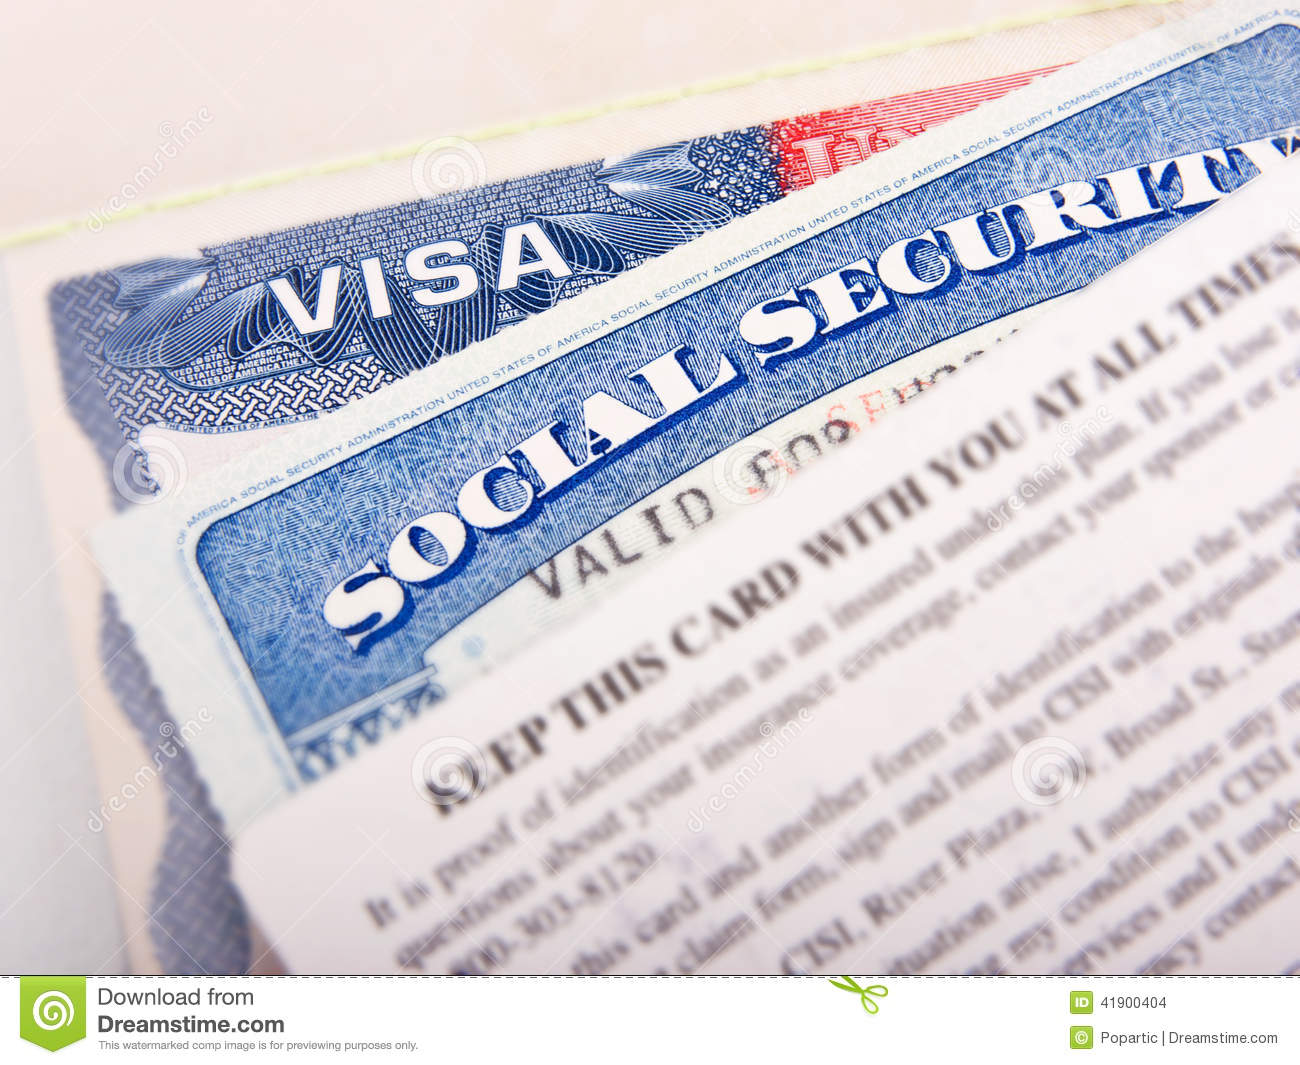 Access Social American - Tourism Of Stock Card 41900404 And Security Visa Image Photo